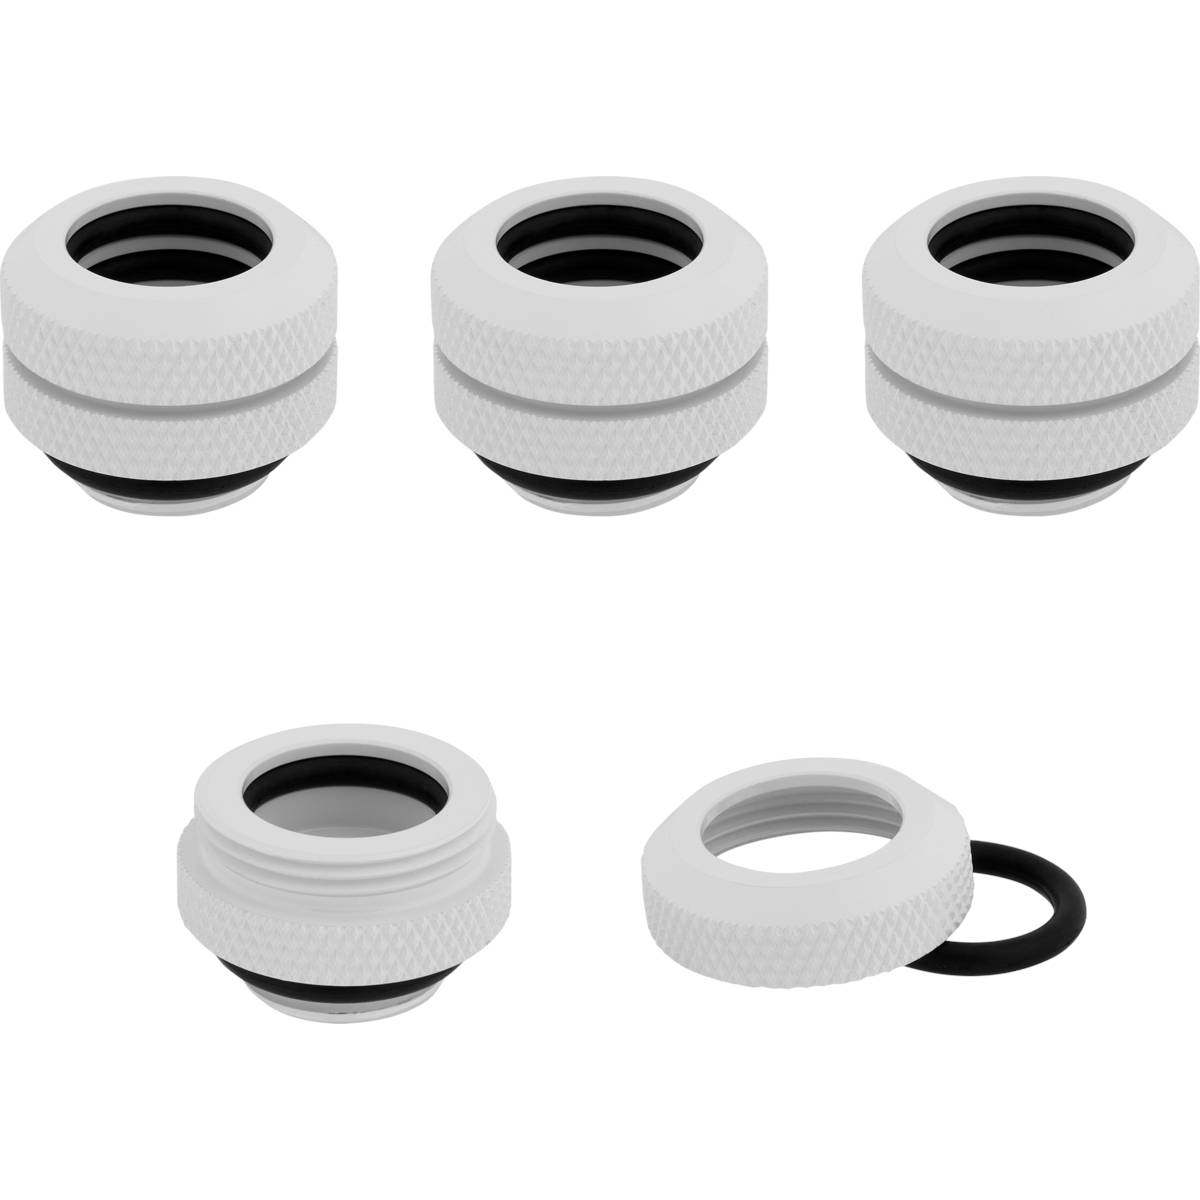 CORSAIR Hydro X Series XF Hardline 12mm OD Fitting Four Pack - White